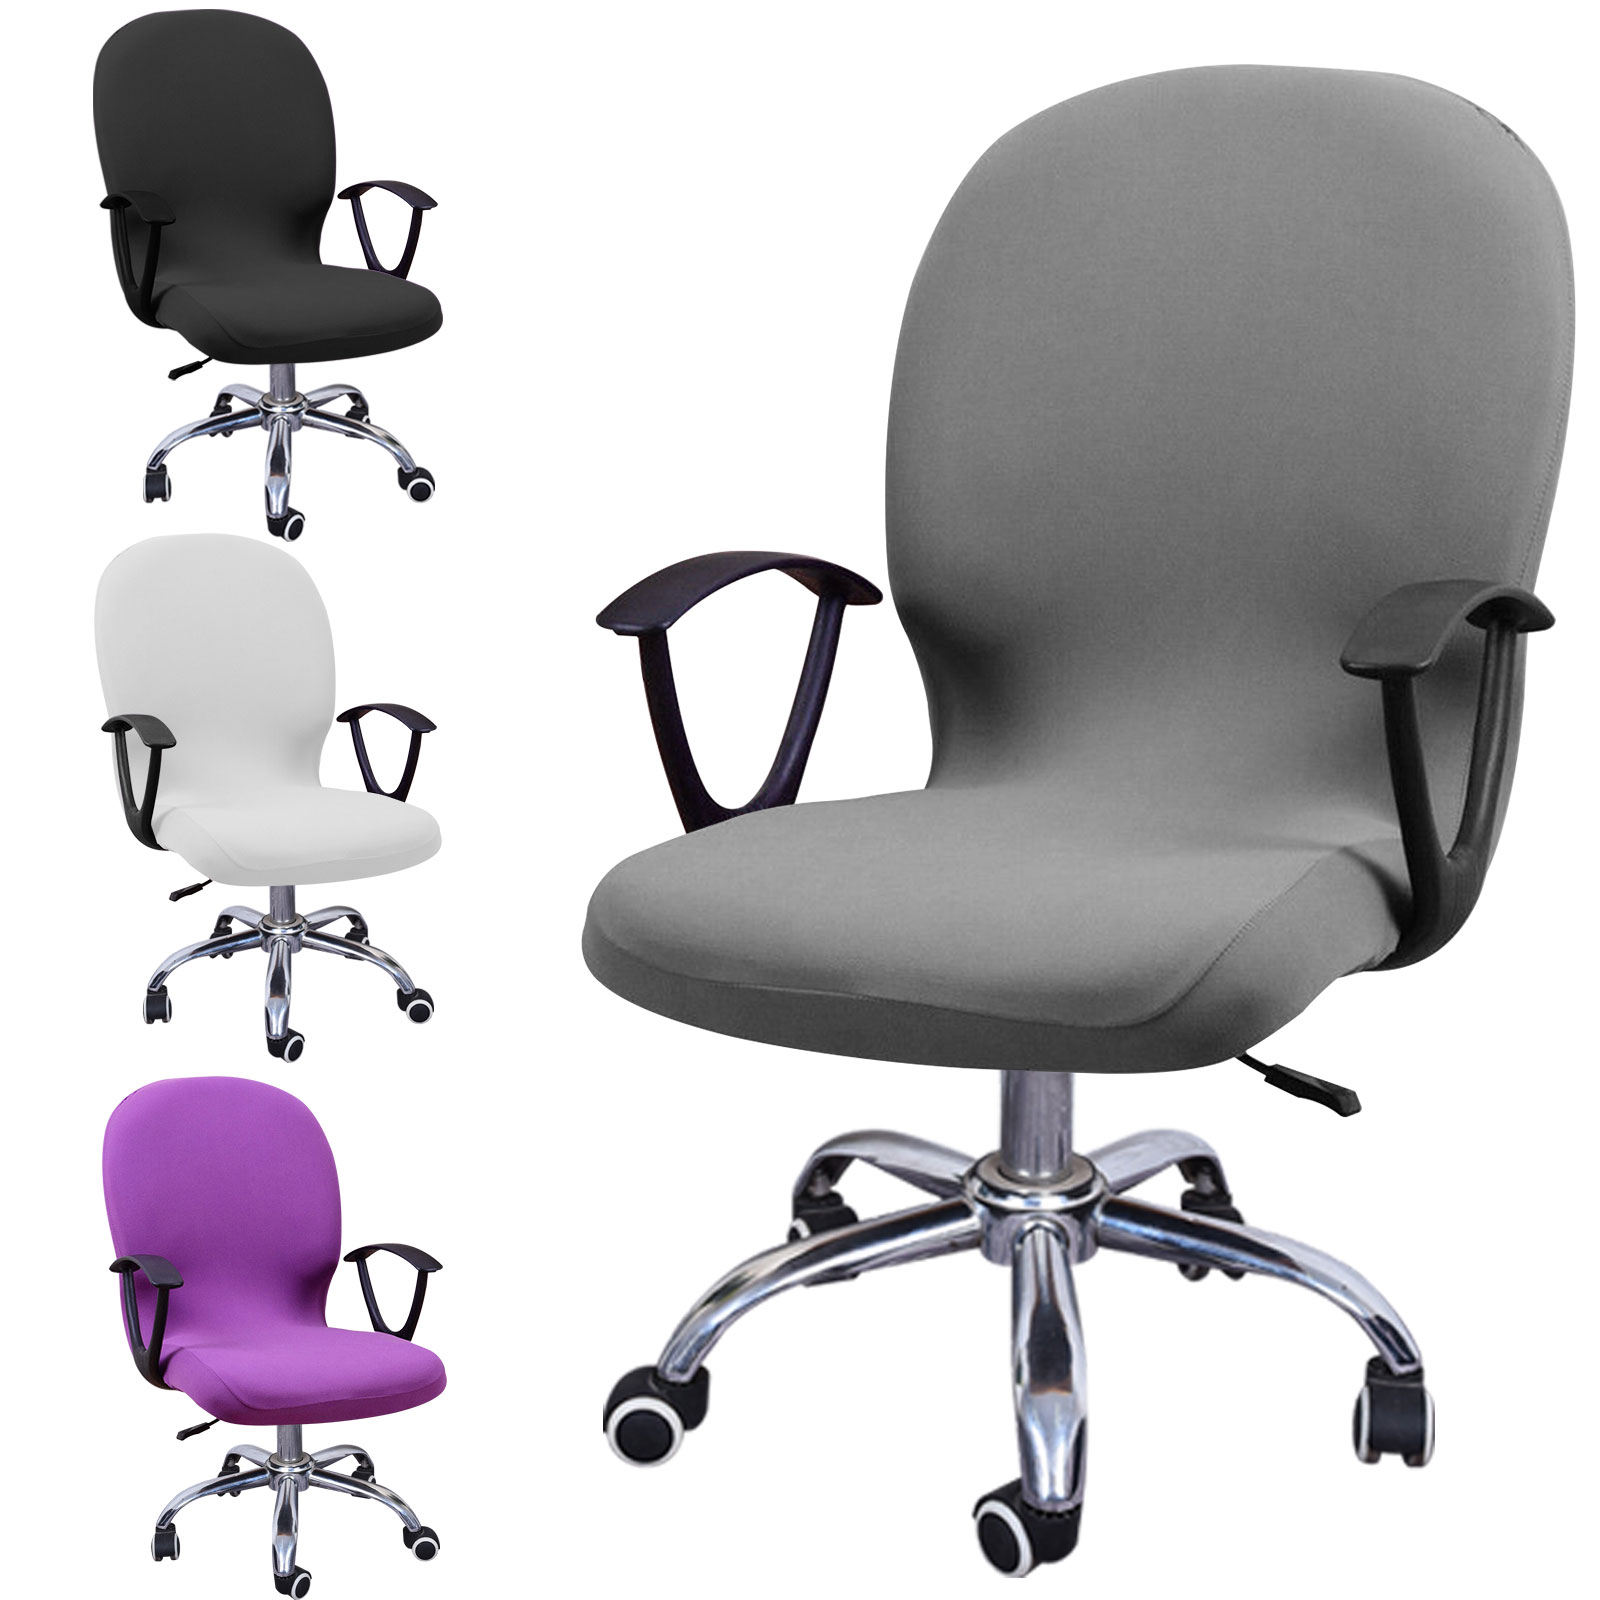 Swivel-Computer-Chair-Cover-Stretch-Remove-Office-Armchair-Slipcover-Seat-Cover thumbnail 11